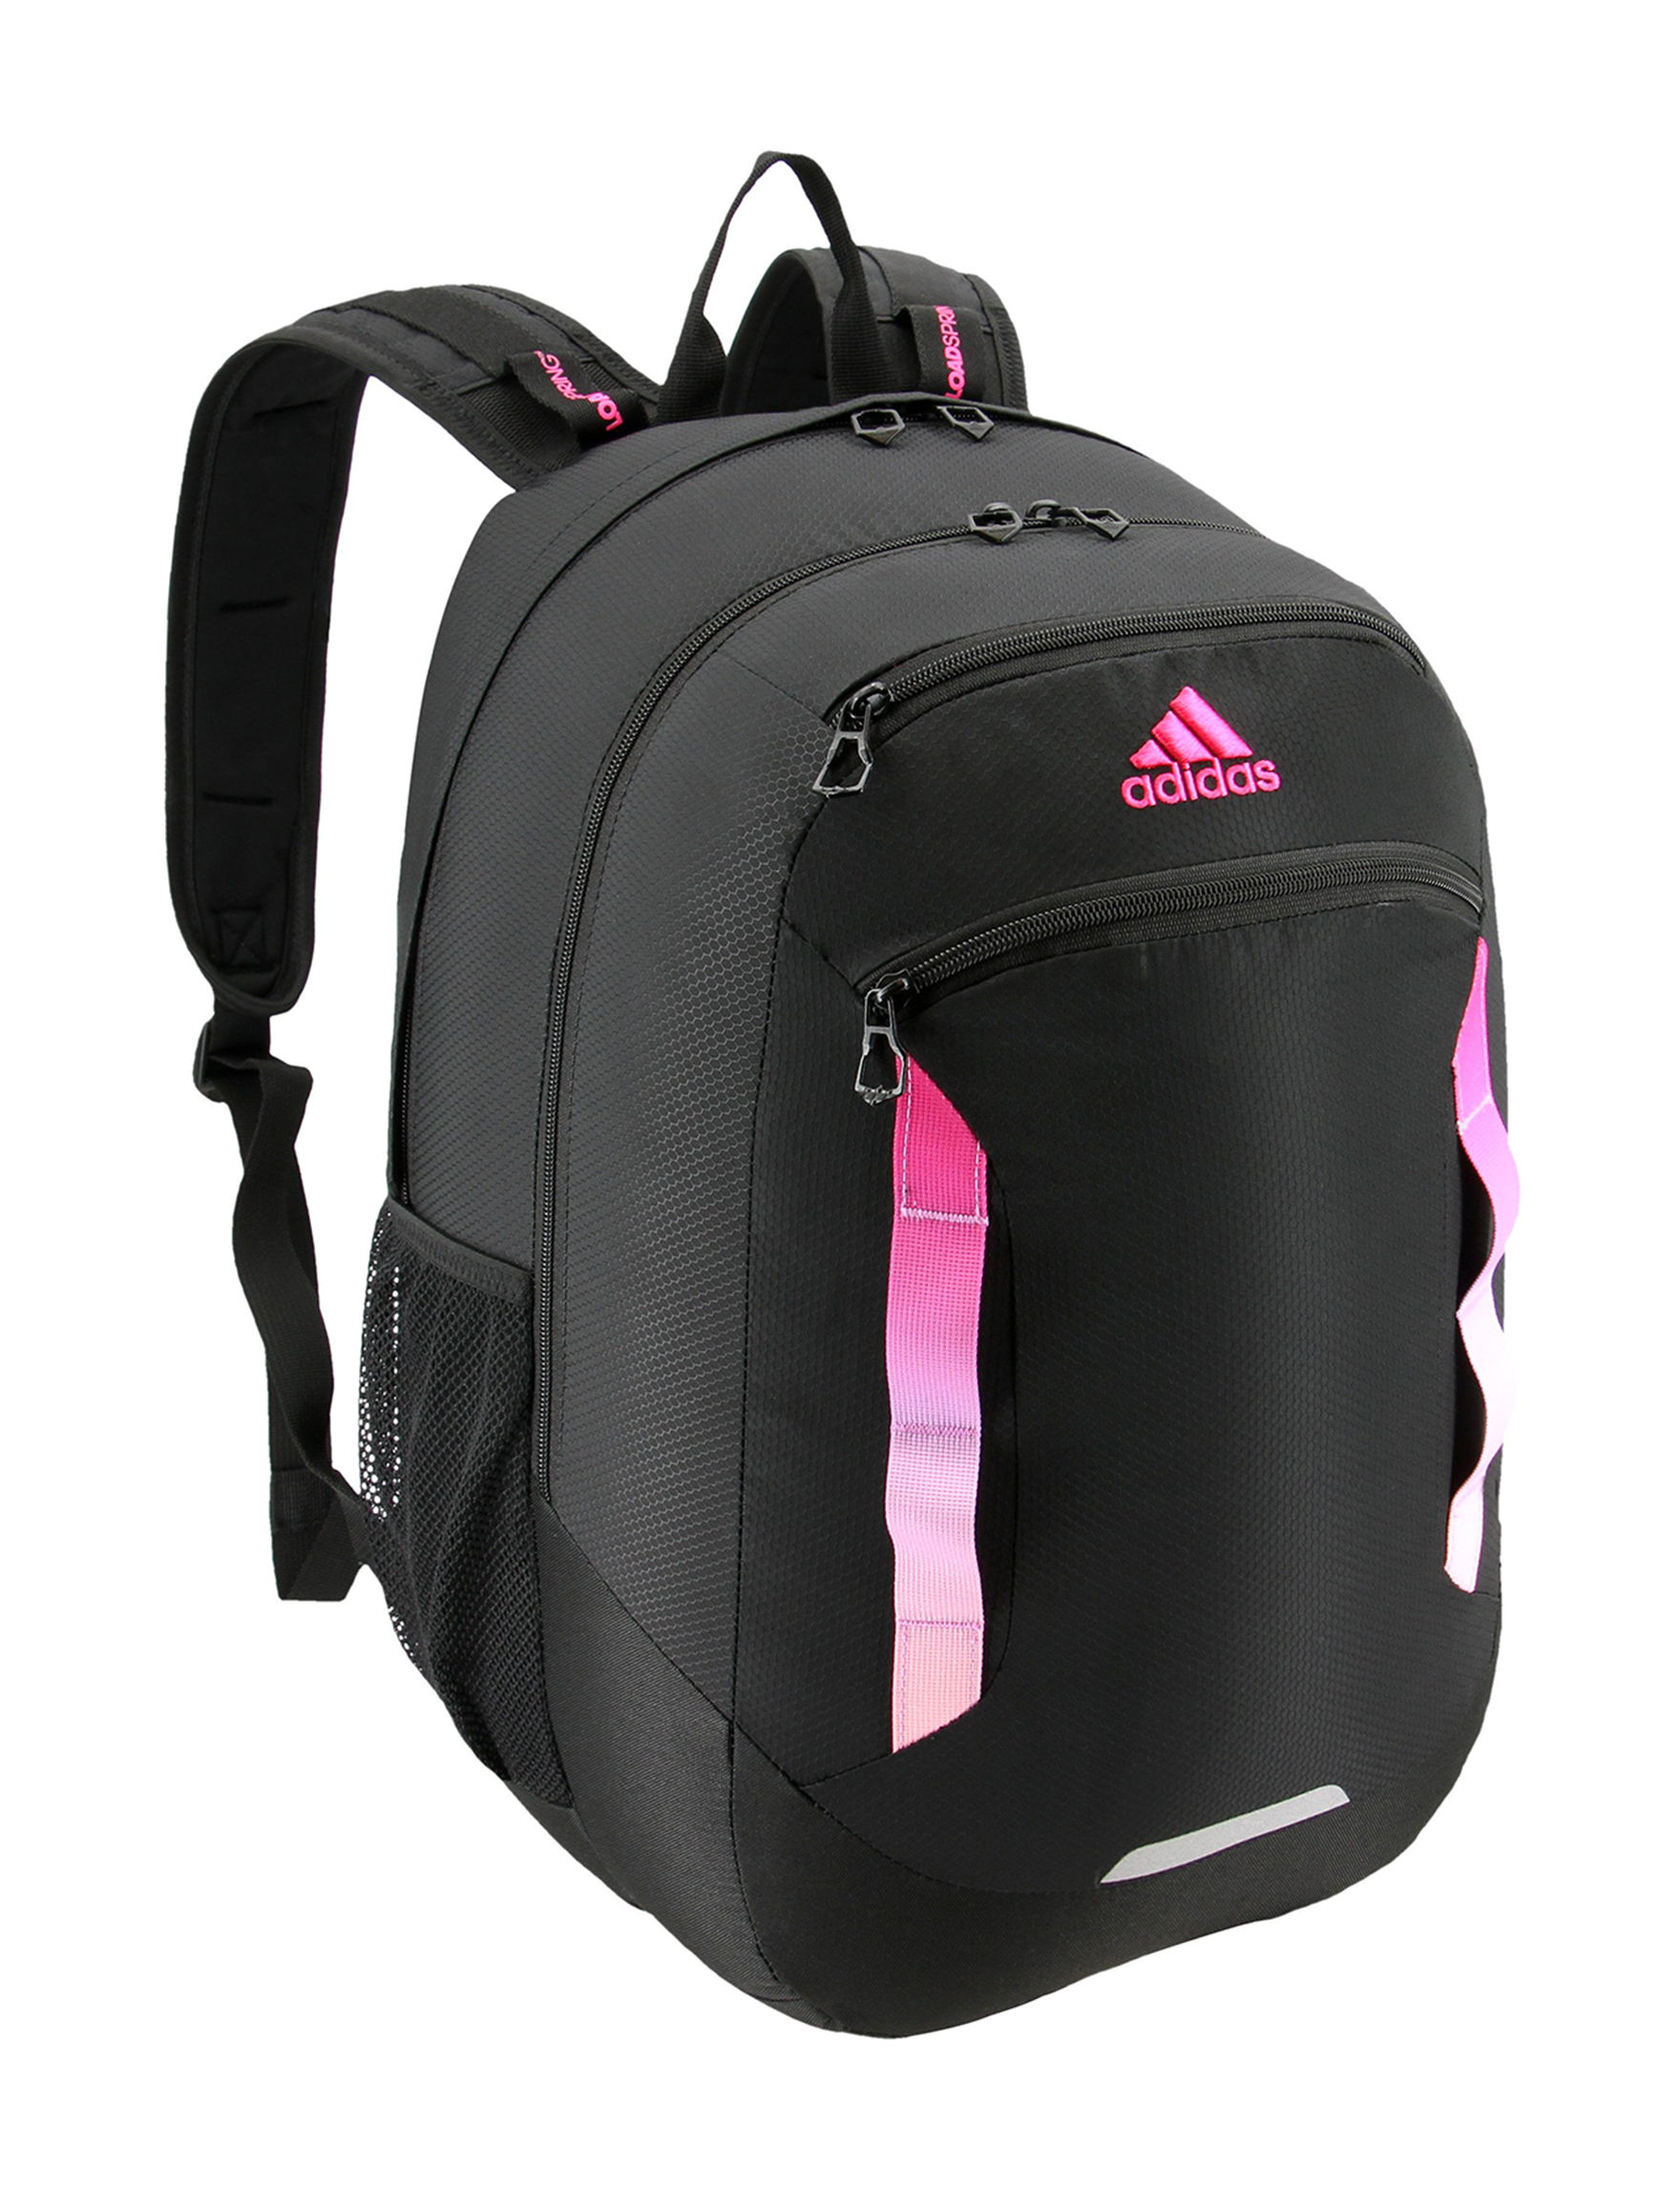 Adidas Black / Pink Bookbags & Backpacks